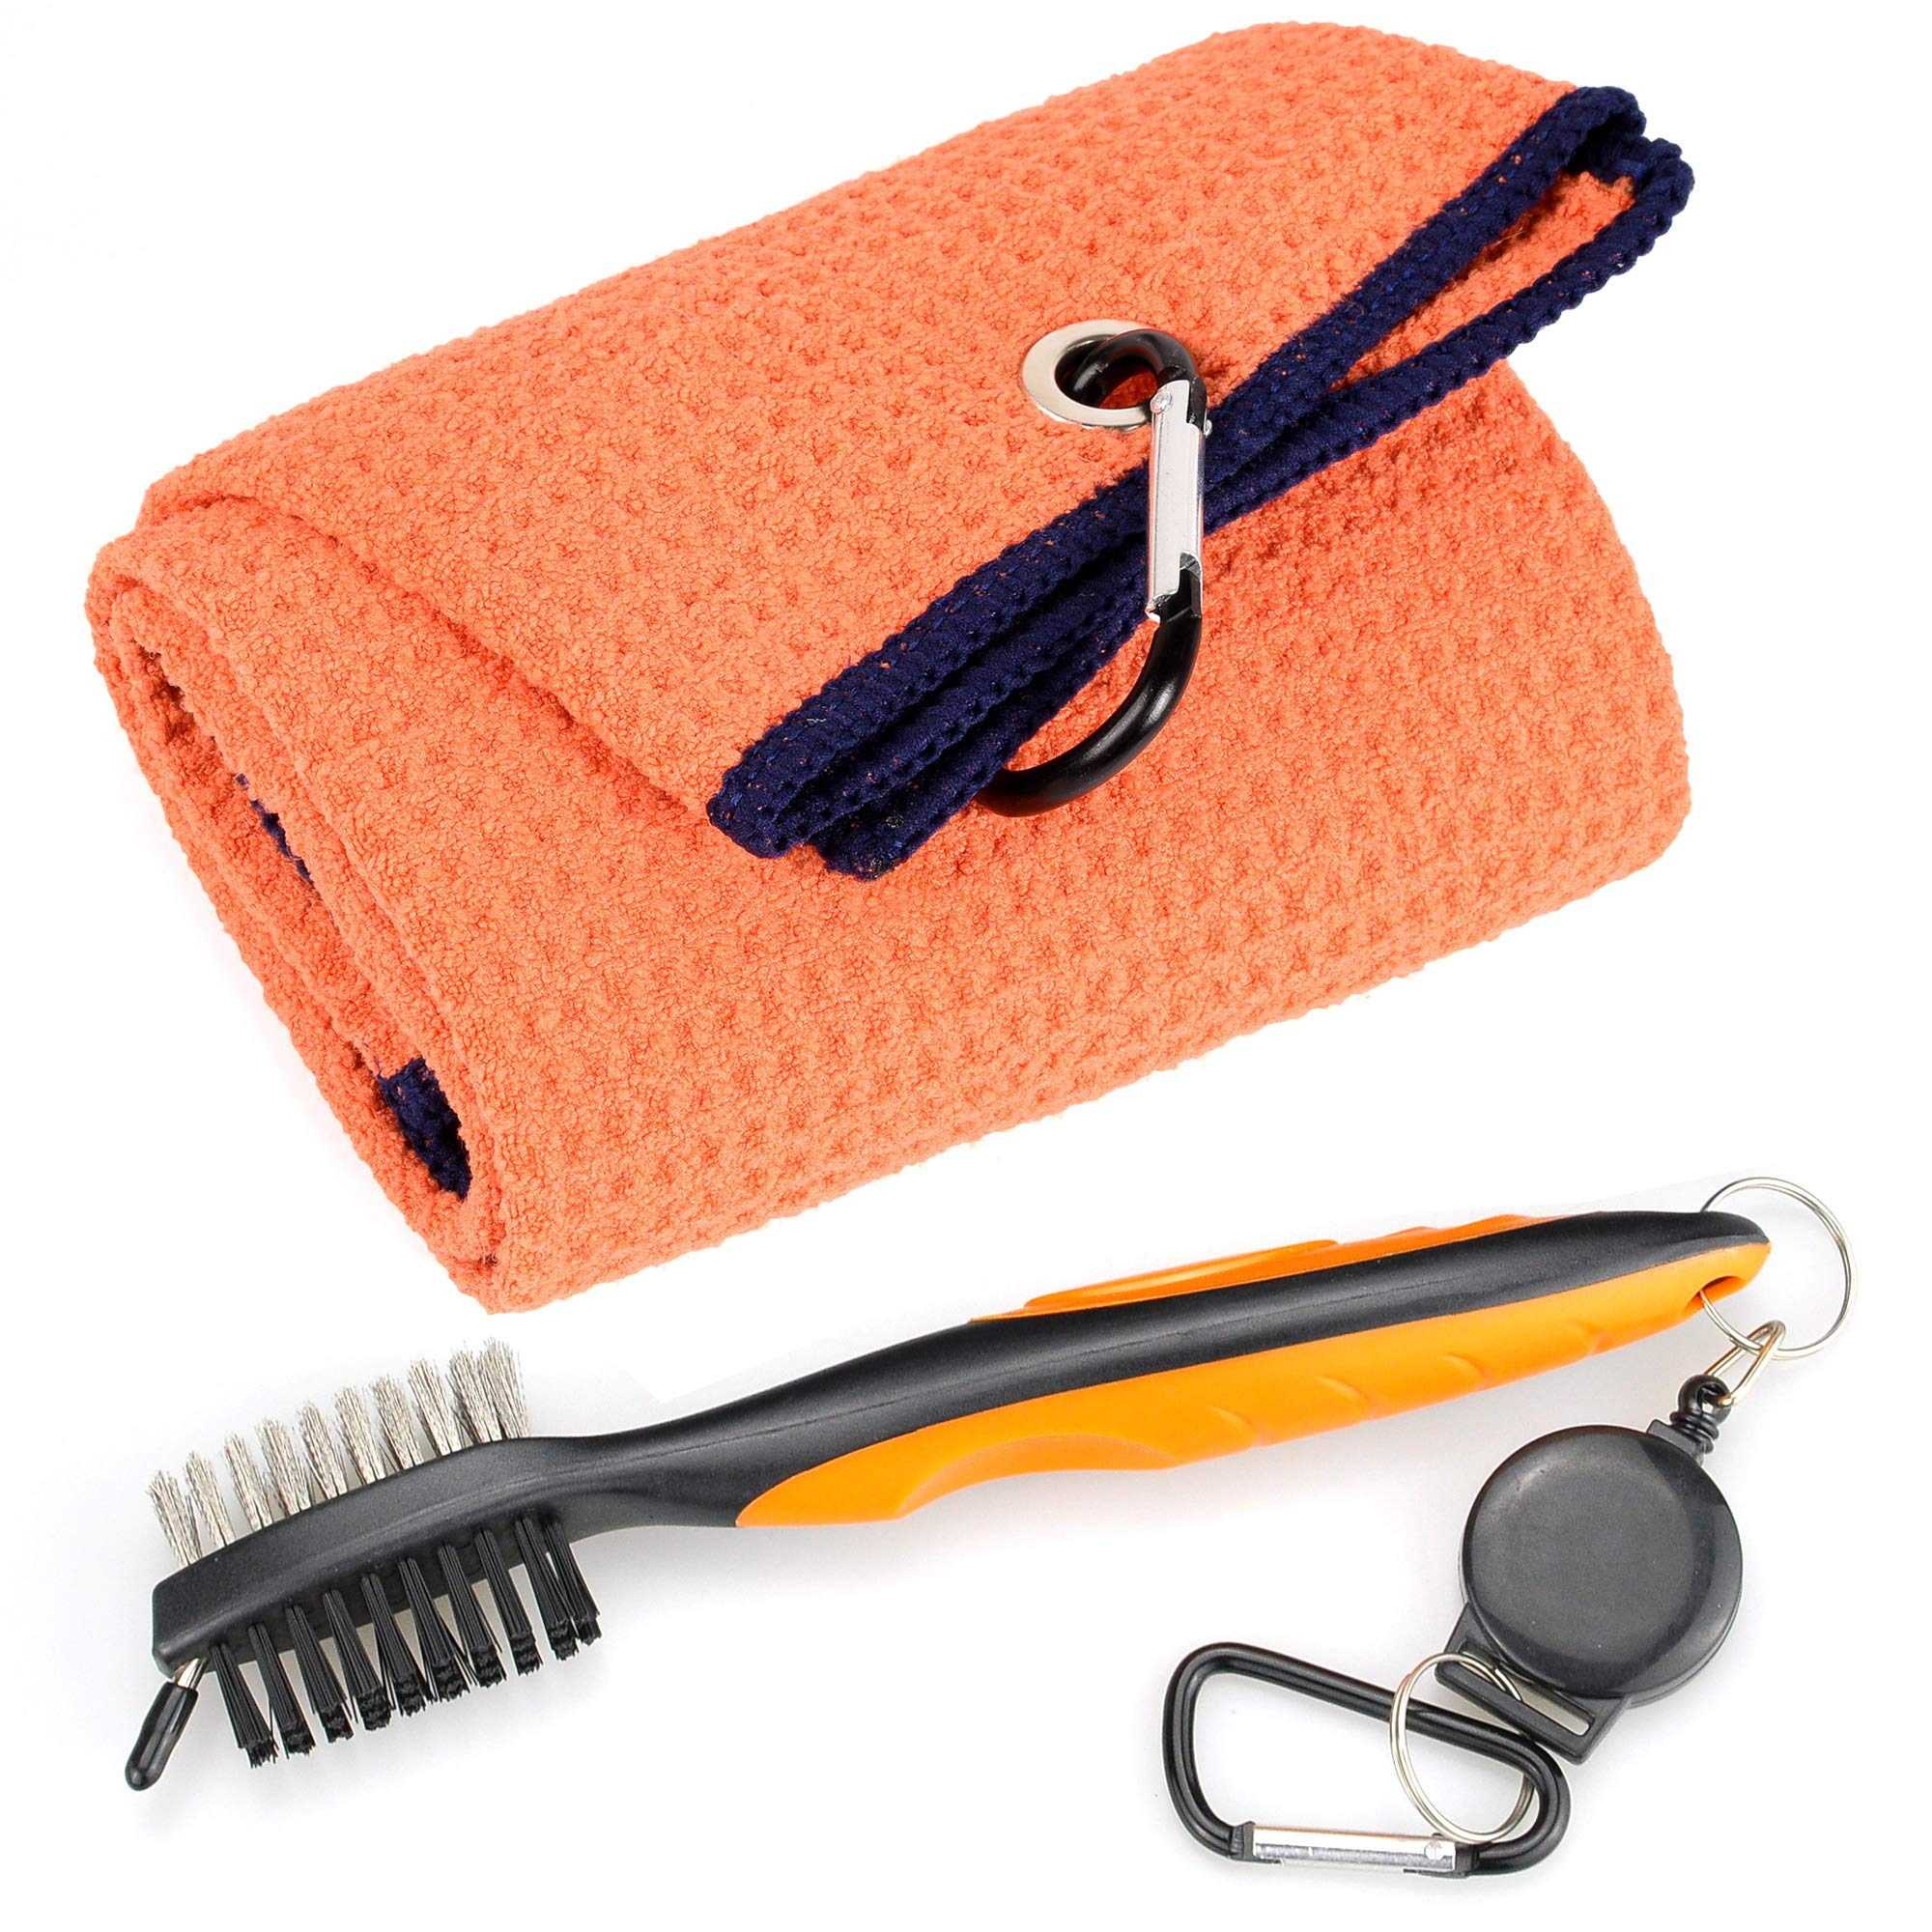 Mile High Life Microfiber Waffle Pattern Tri-fold Golf Towel | Brush Tool Kit with Club Groove Cleaner, Retractable Extension Cord and Clip (Orange Towel+Orange Brush) by Mile High Life